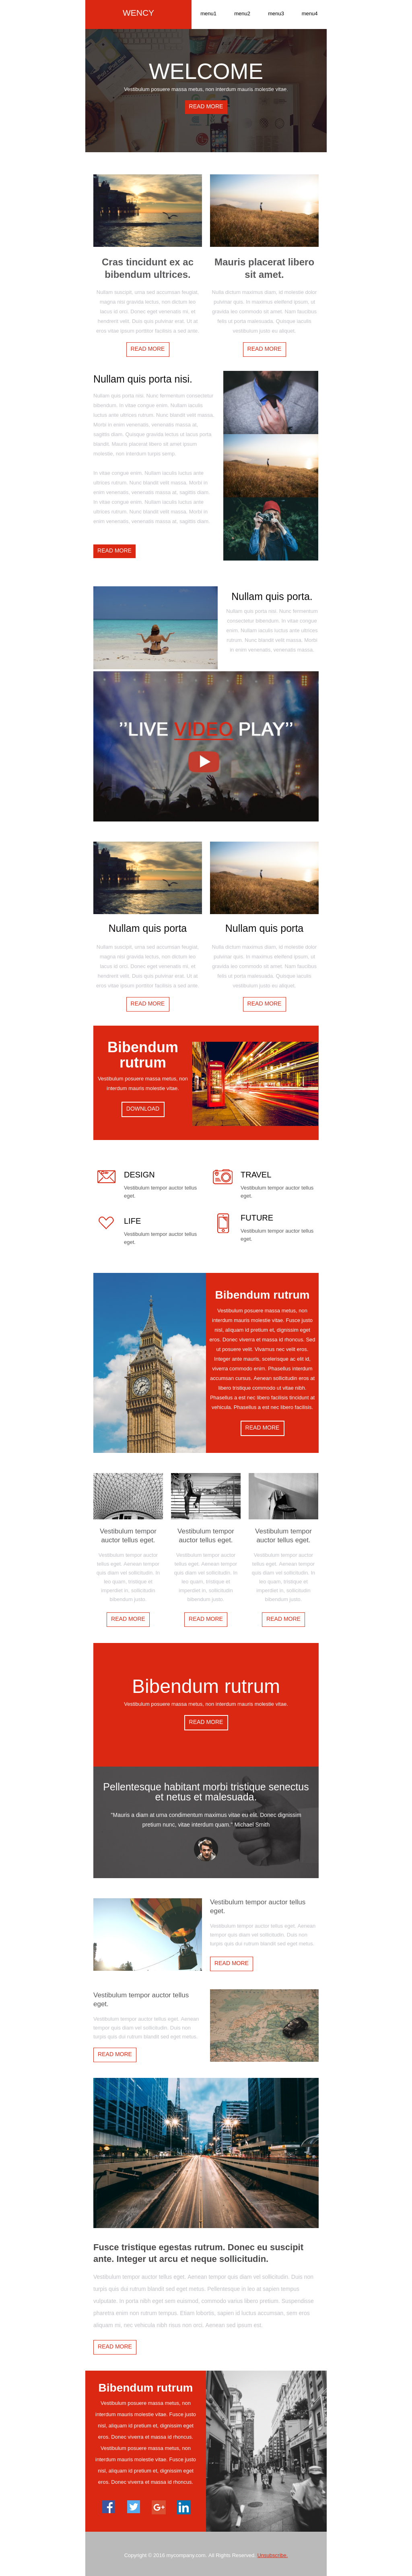 Clean corporate style mobile-friendly newsletter template